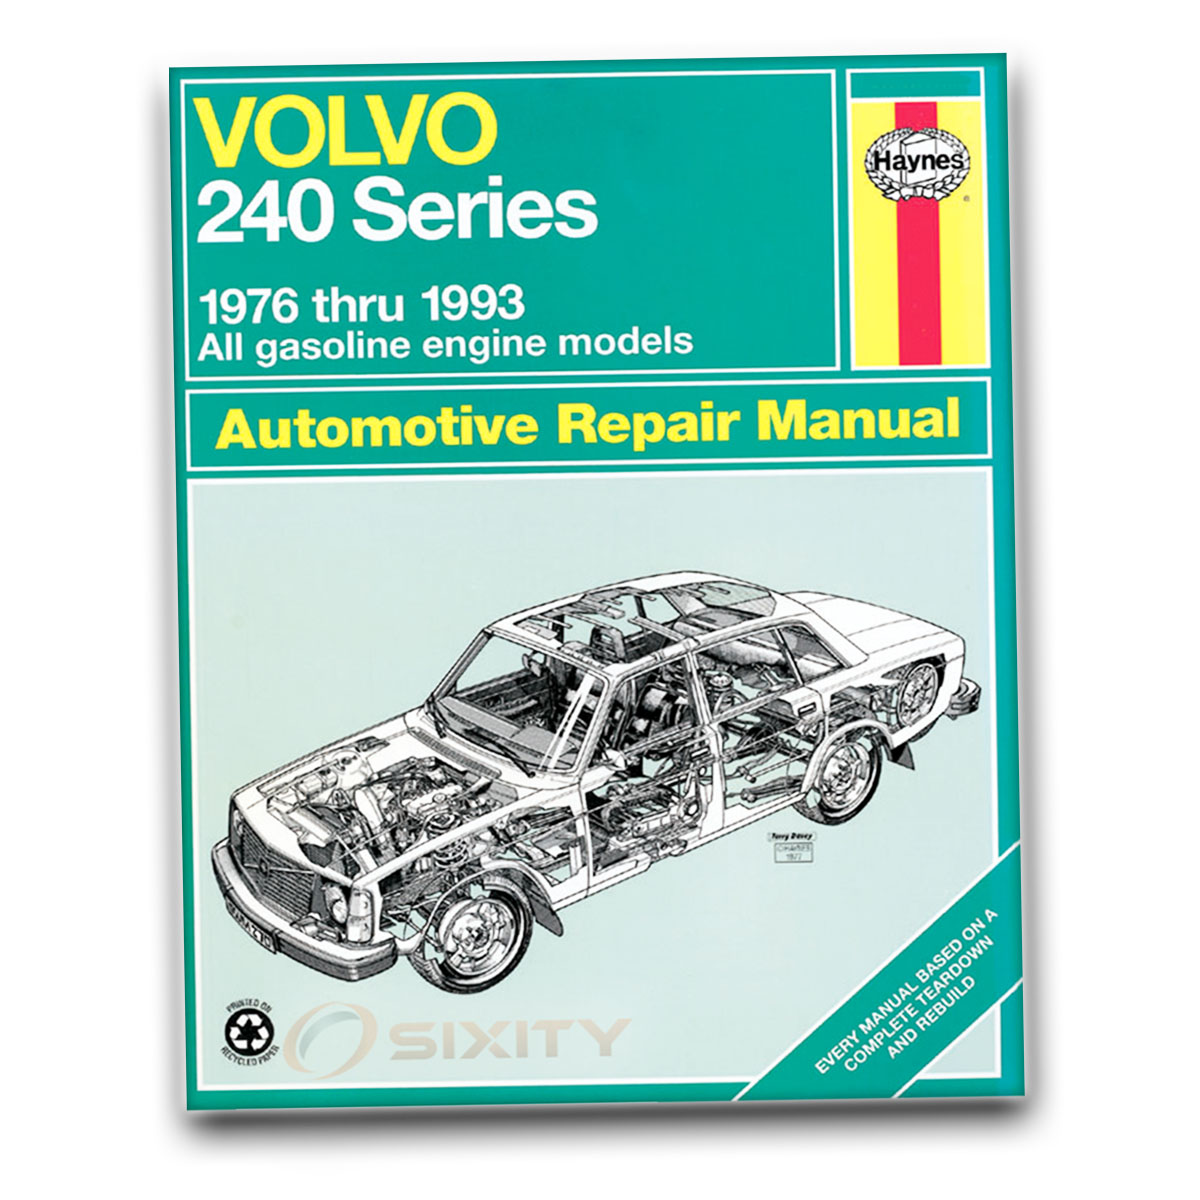 volvo 245 haynes repair manual glt base dl shop service garage book rh ebay com Diesel Timing Marks John Deere 455 Diesel Manual